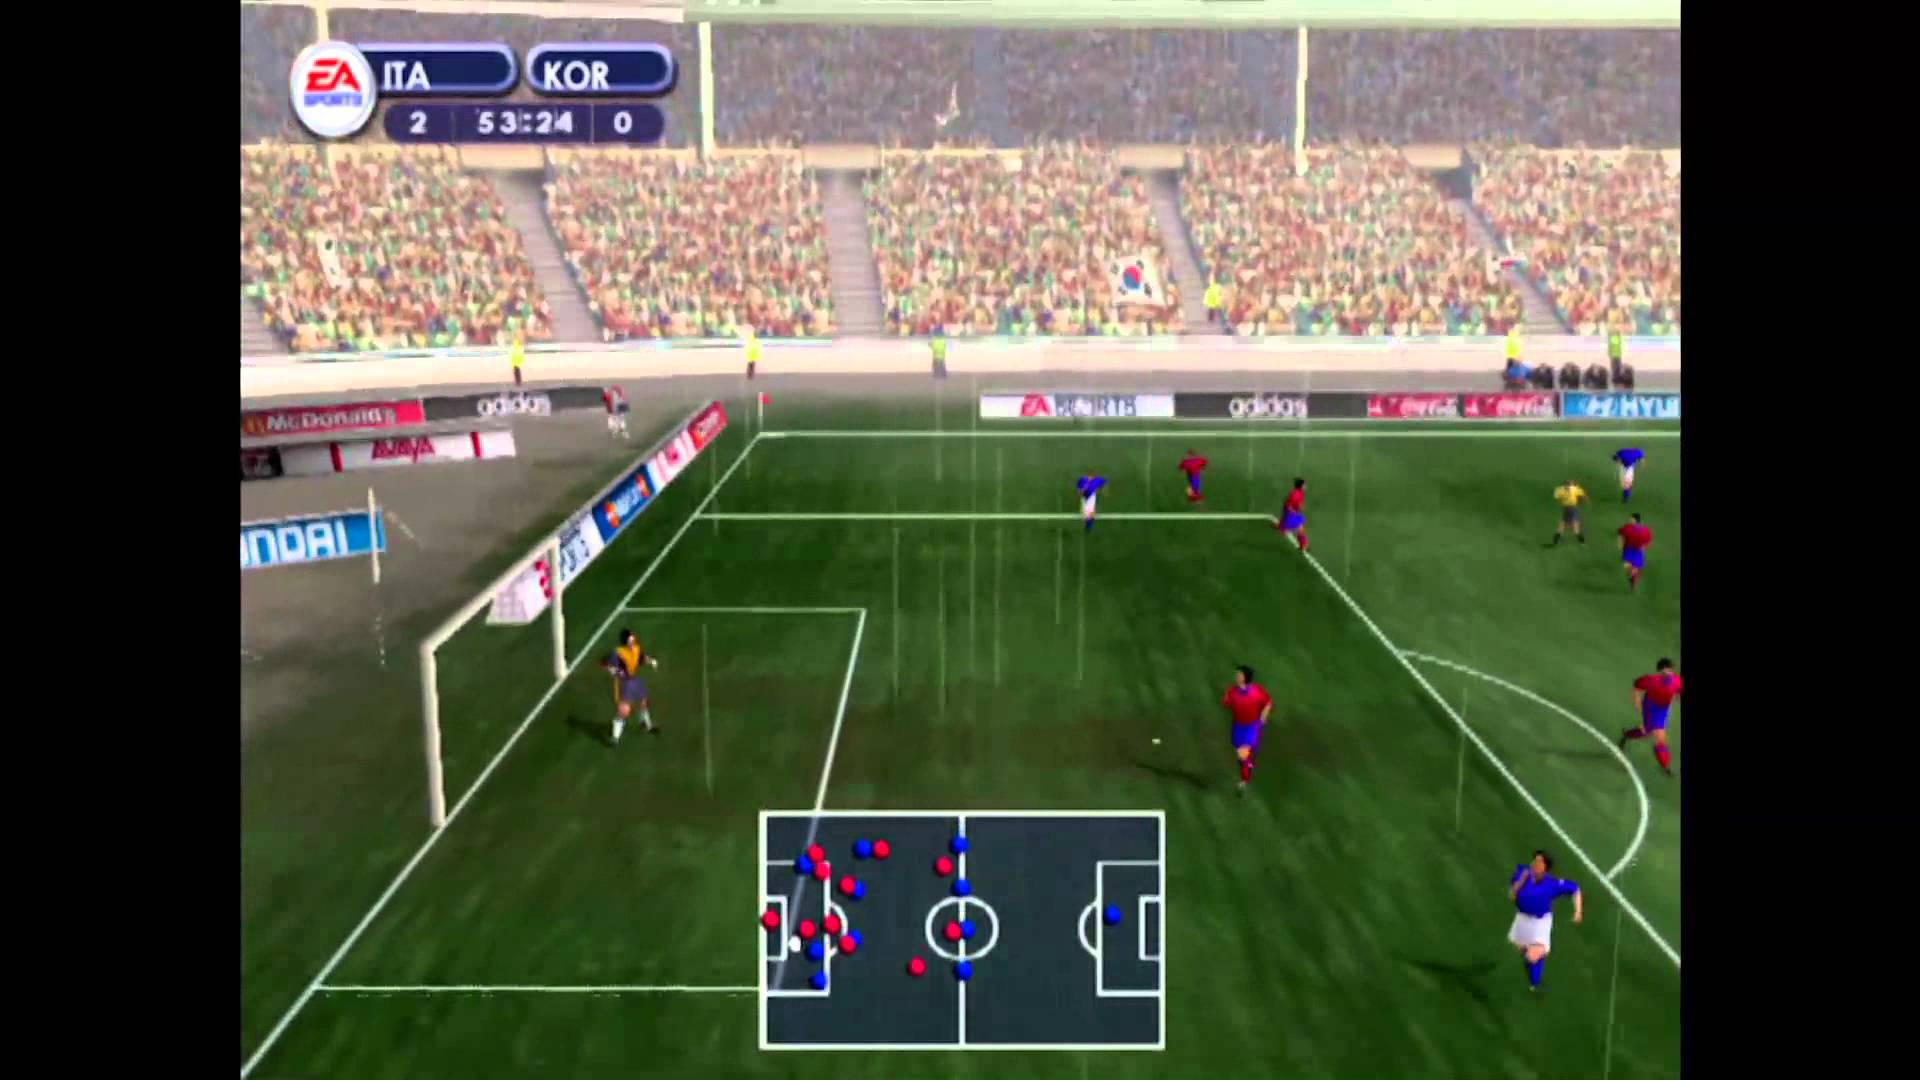 Nds fifa 2018 when is the fifa club world cup final 2018